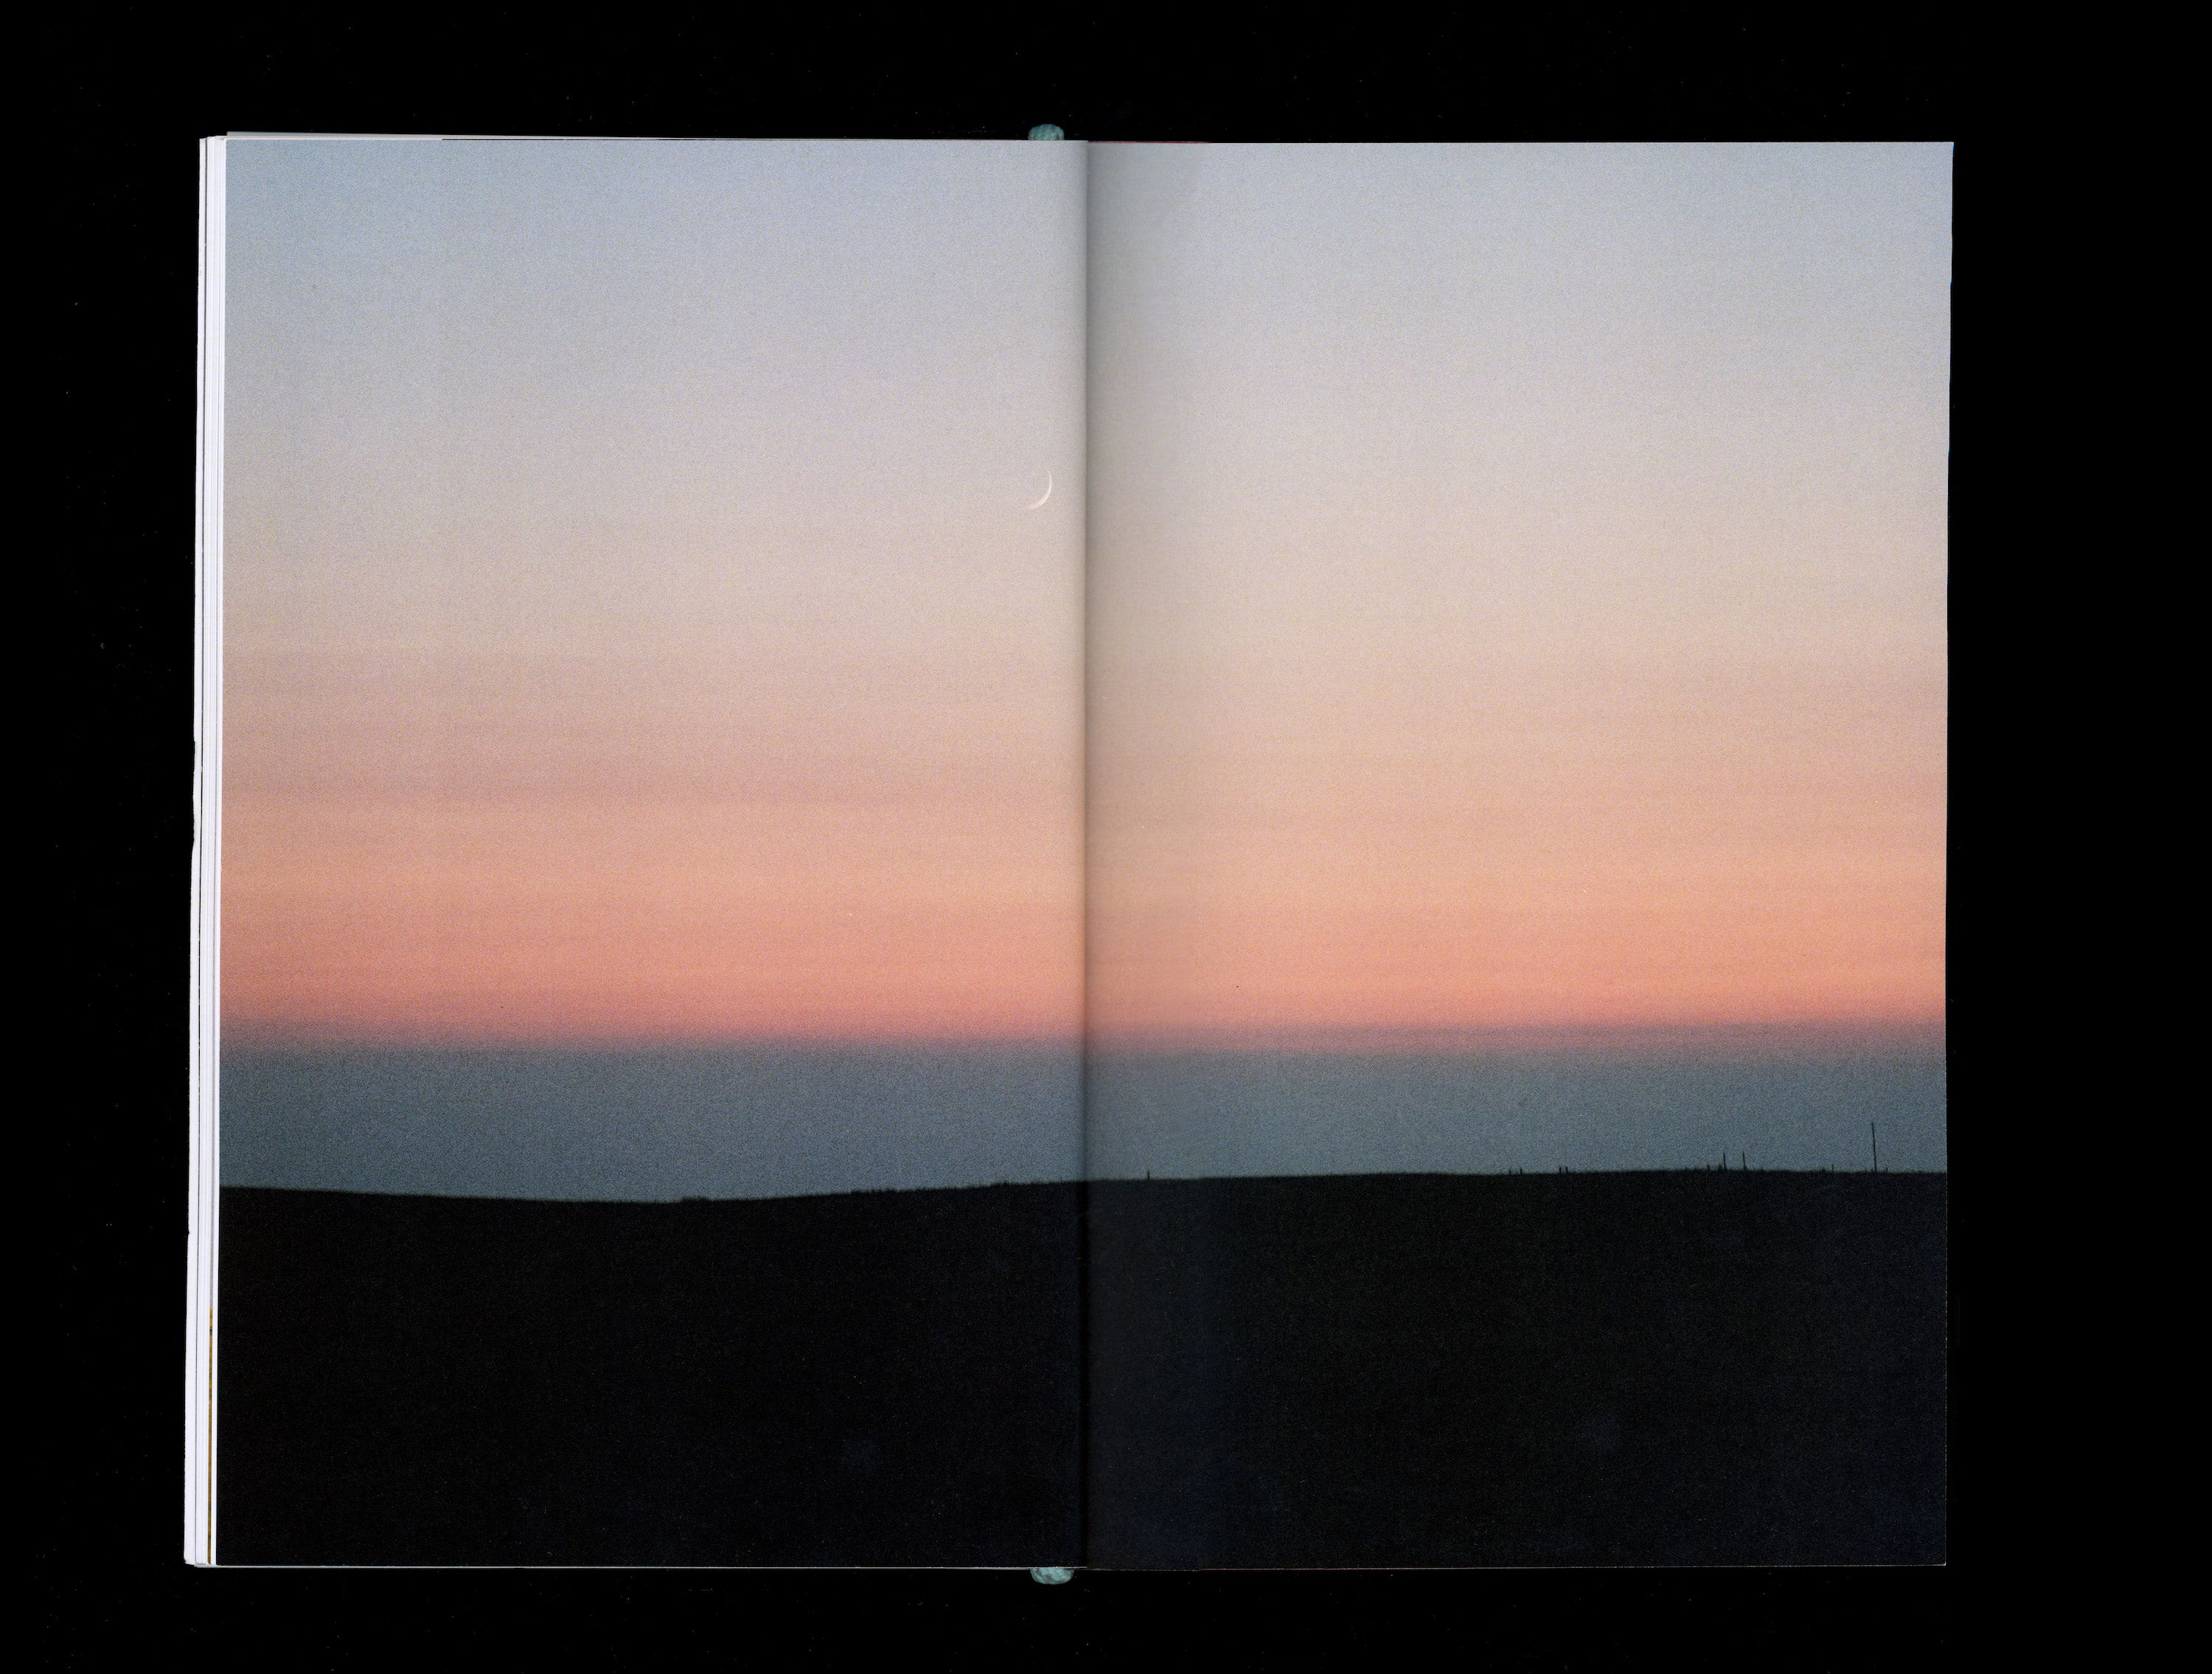 Photograph in book of blue and pink sunset